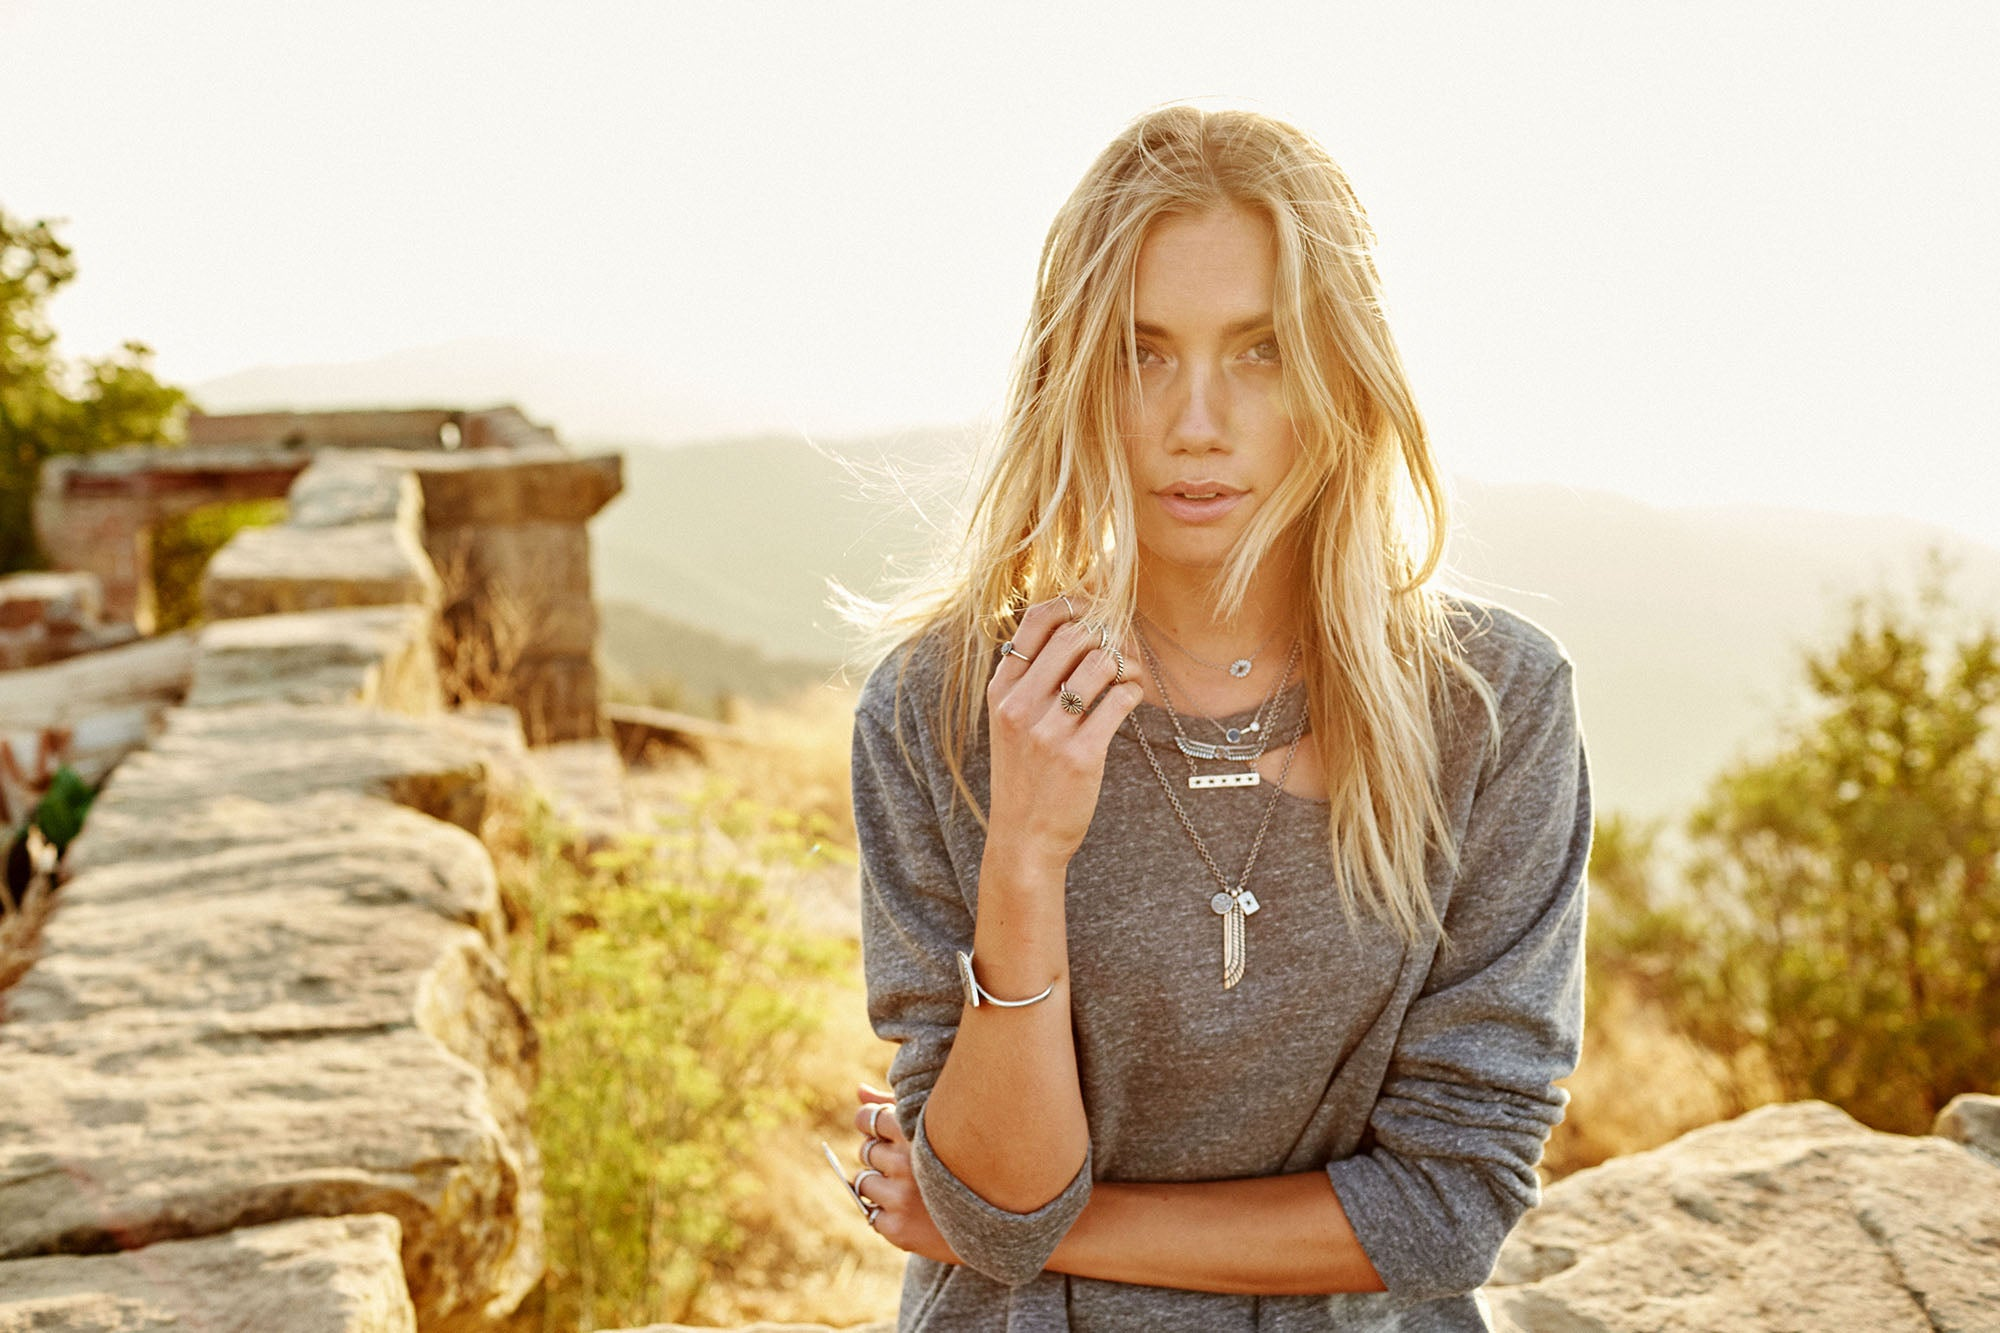 Torchlight Jewelry Ascension Collection / Photographer Nick Onken / Model Alden Steimle / Shot in Santa Barbara, CA